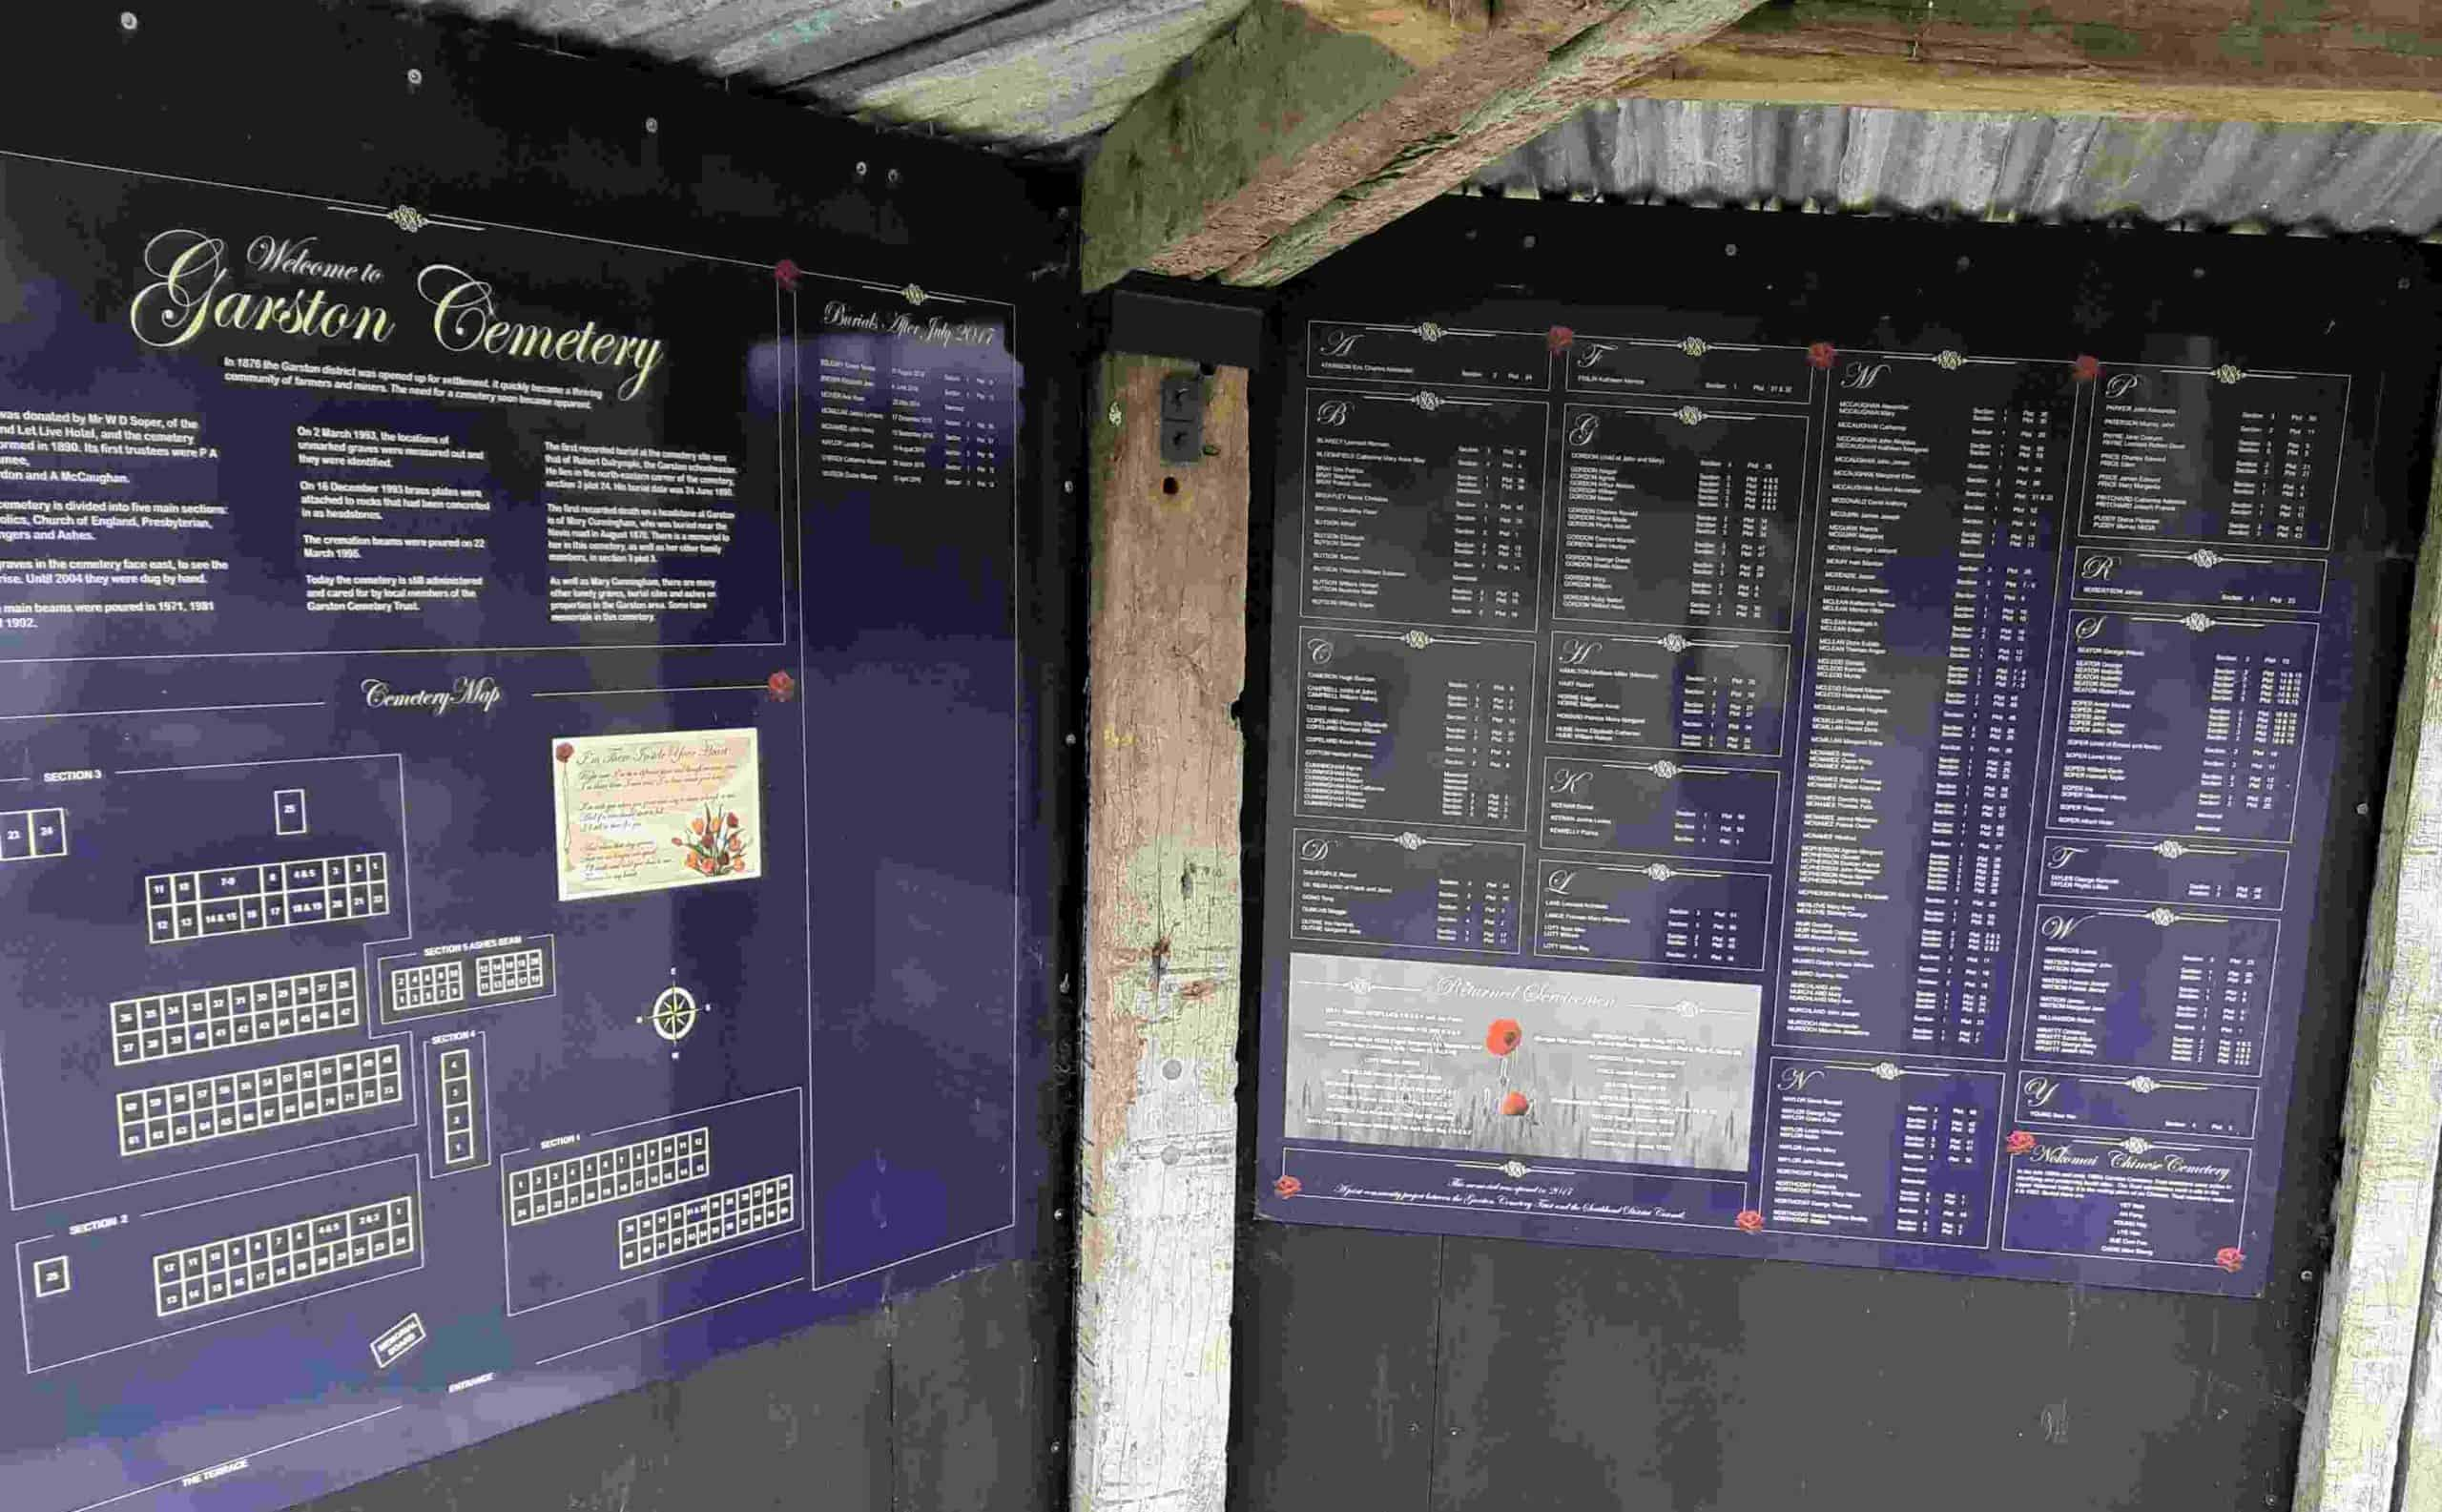 The gold and purple memorial boards at Garston.